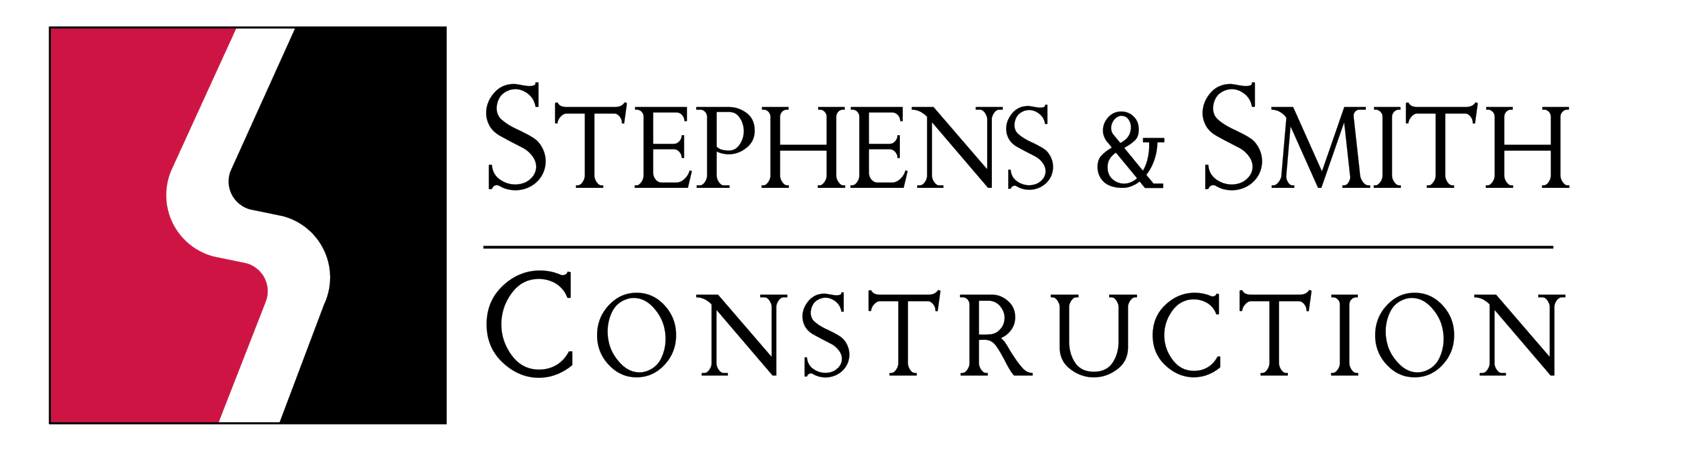 official Stephens and smith construction logo